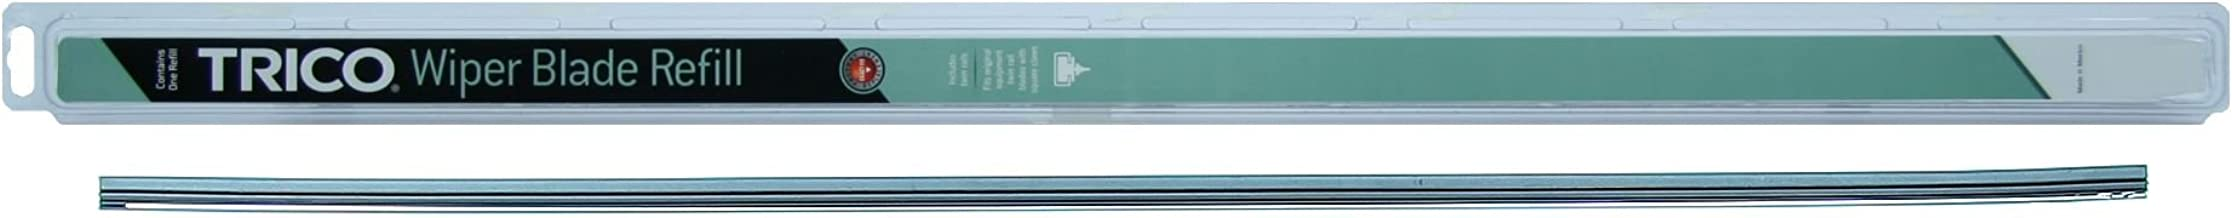 Trico 45-280 Narrow Wiper Blade Refill - 700mm (1 Refill)